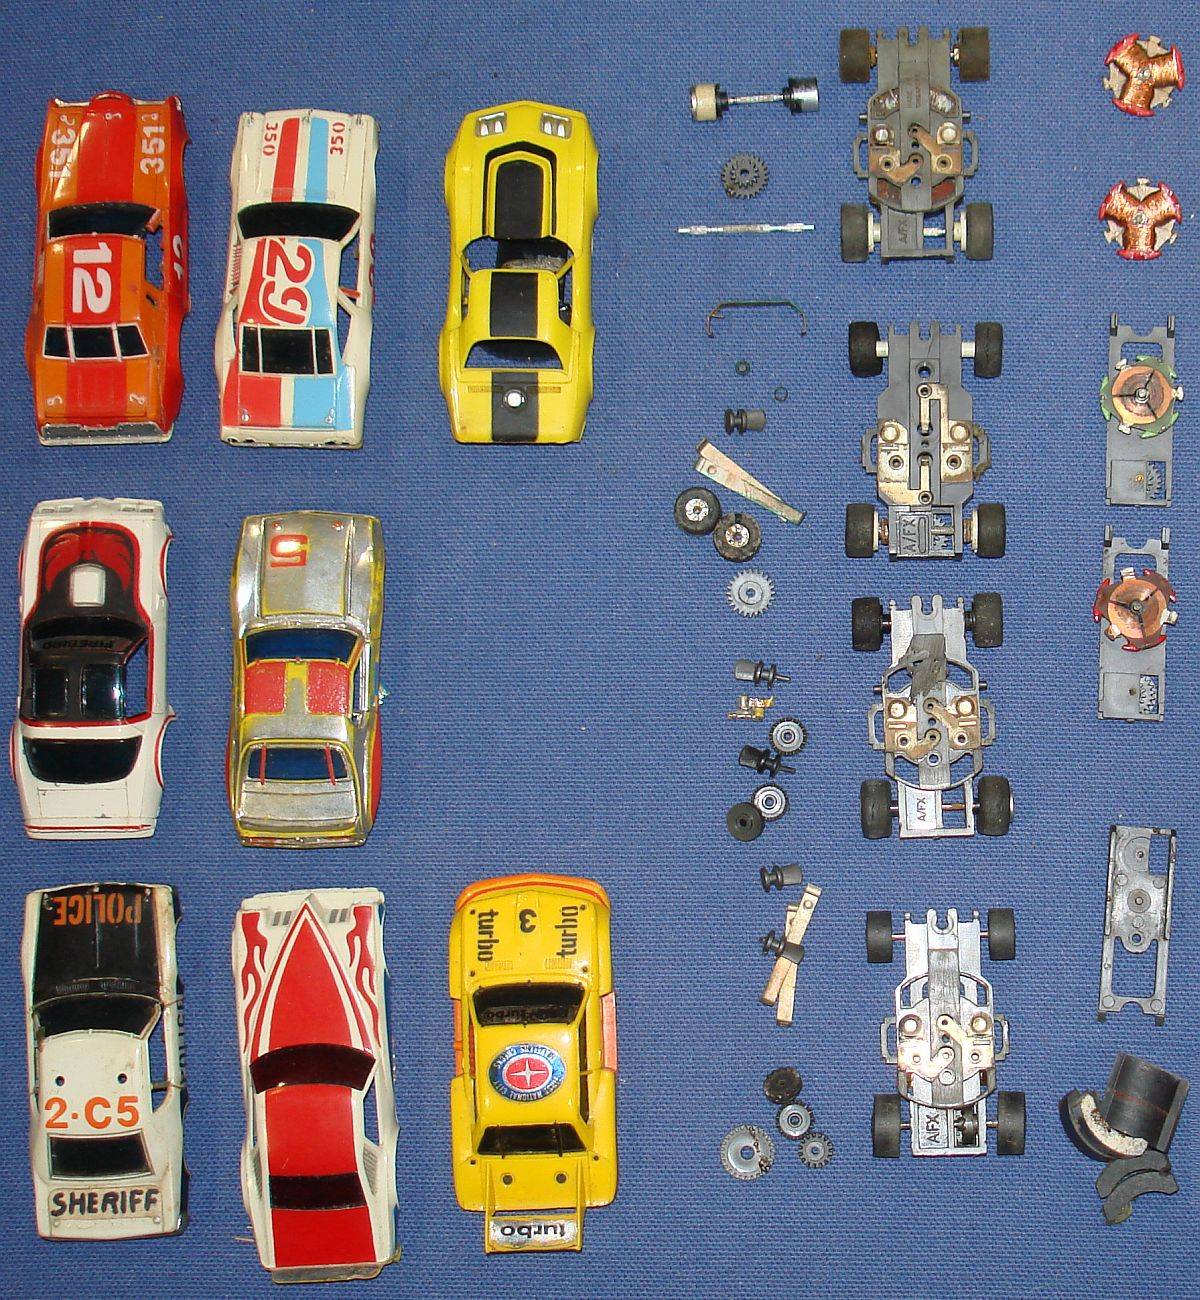 Scale Auto Ho Slot Cars Best Casino Online Car Wiring Diagram Find Great Deals On Ebay For And Pioneer Shop With Confidence 851